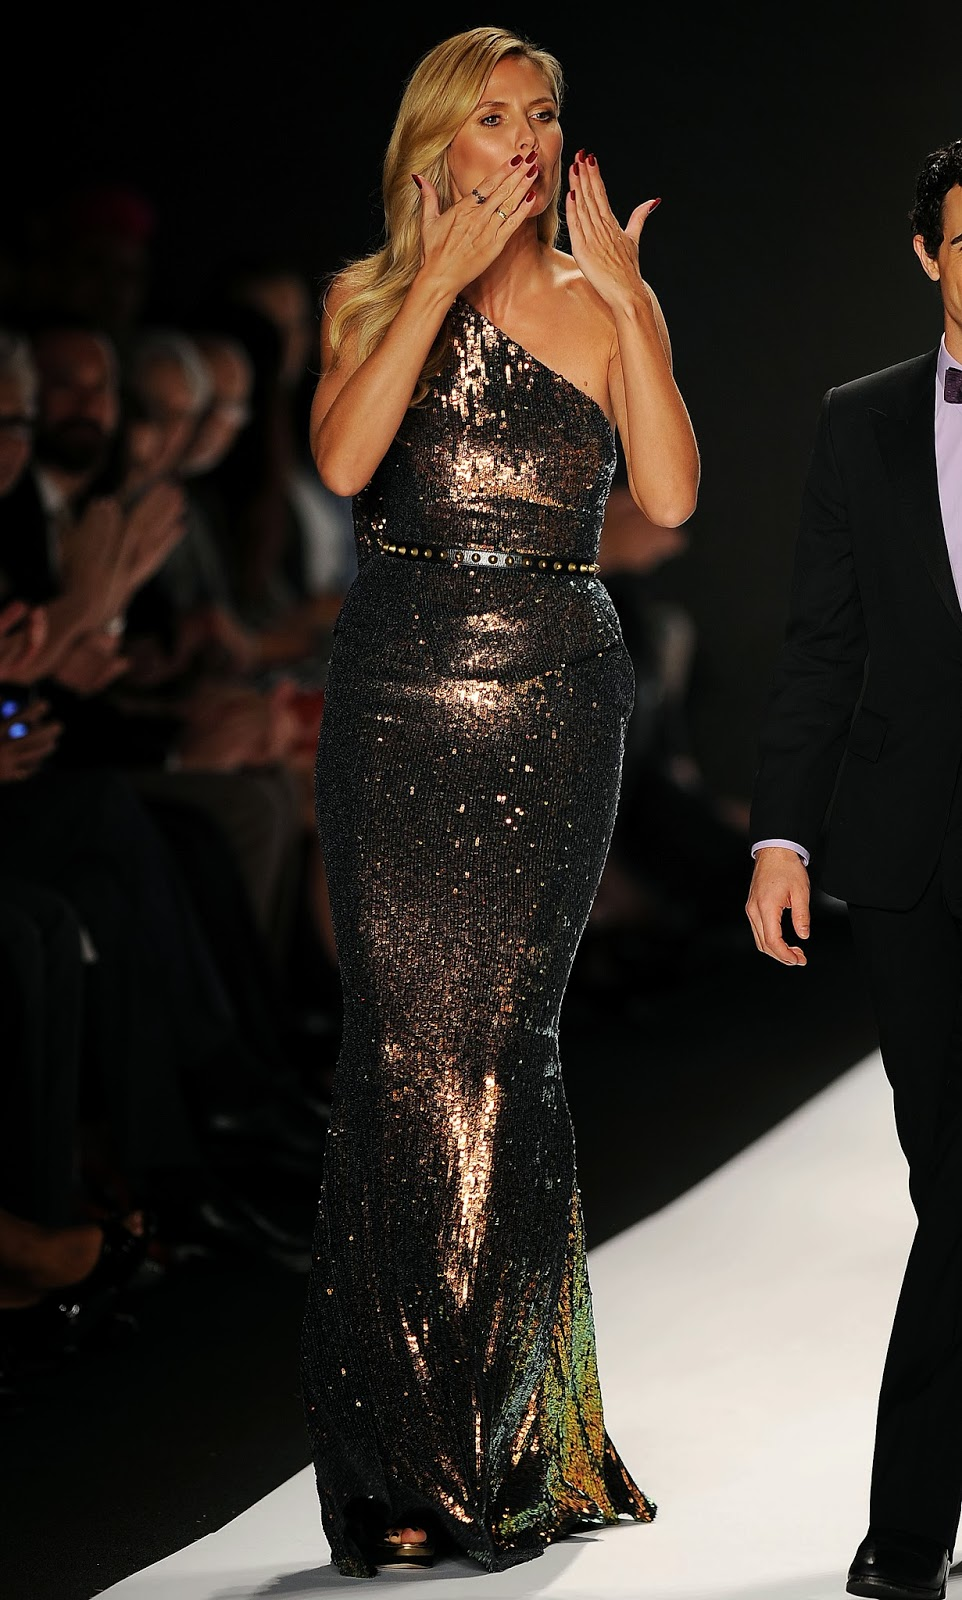 Heidi Klum Heidi Klum At Project Runway Spring 2014